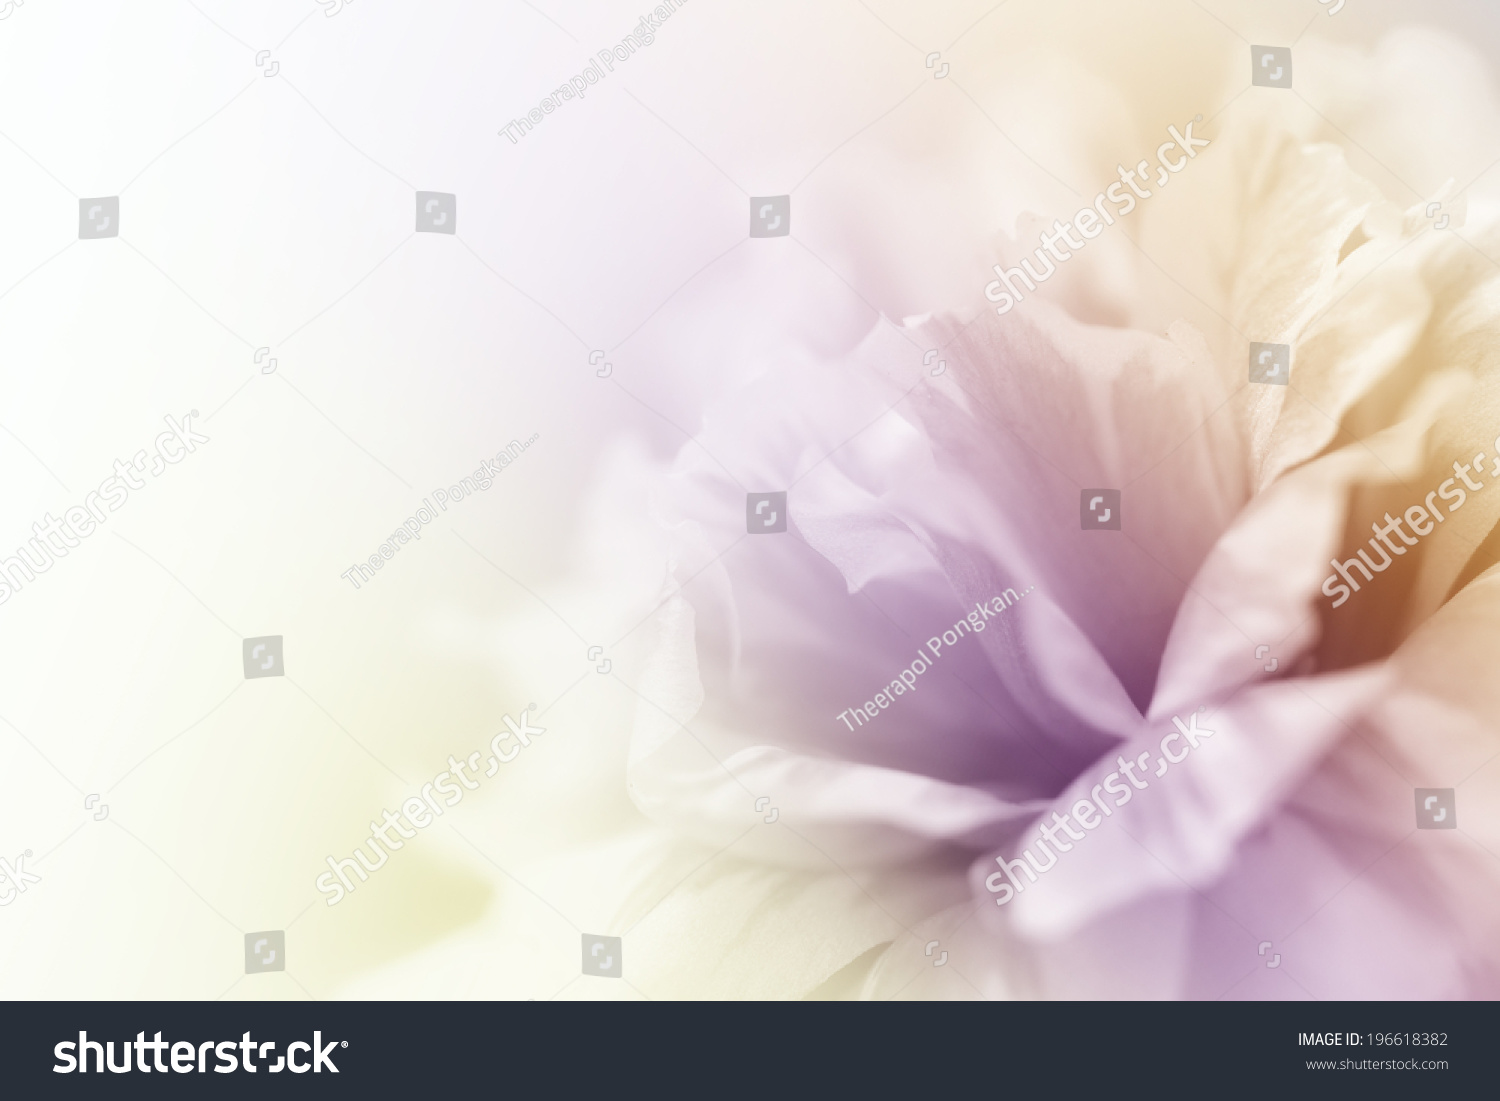 beautiful flowers made with color filters abstract #196618382